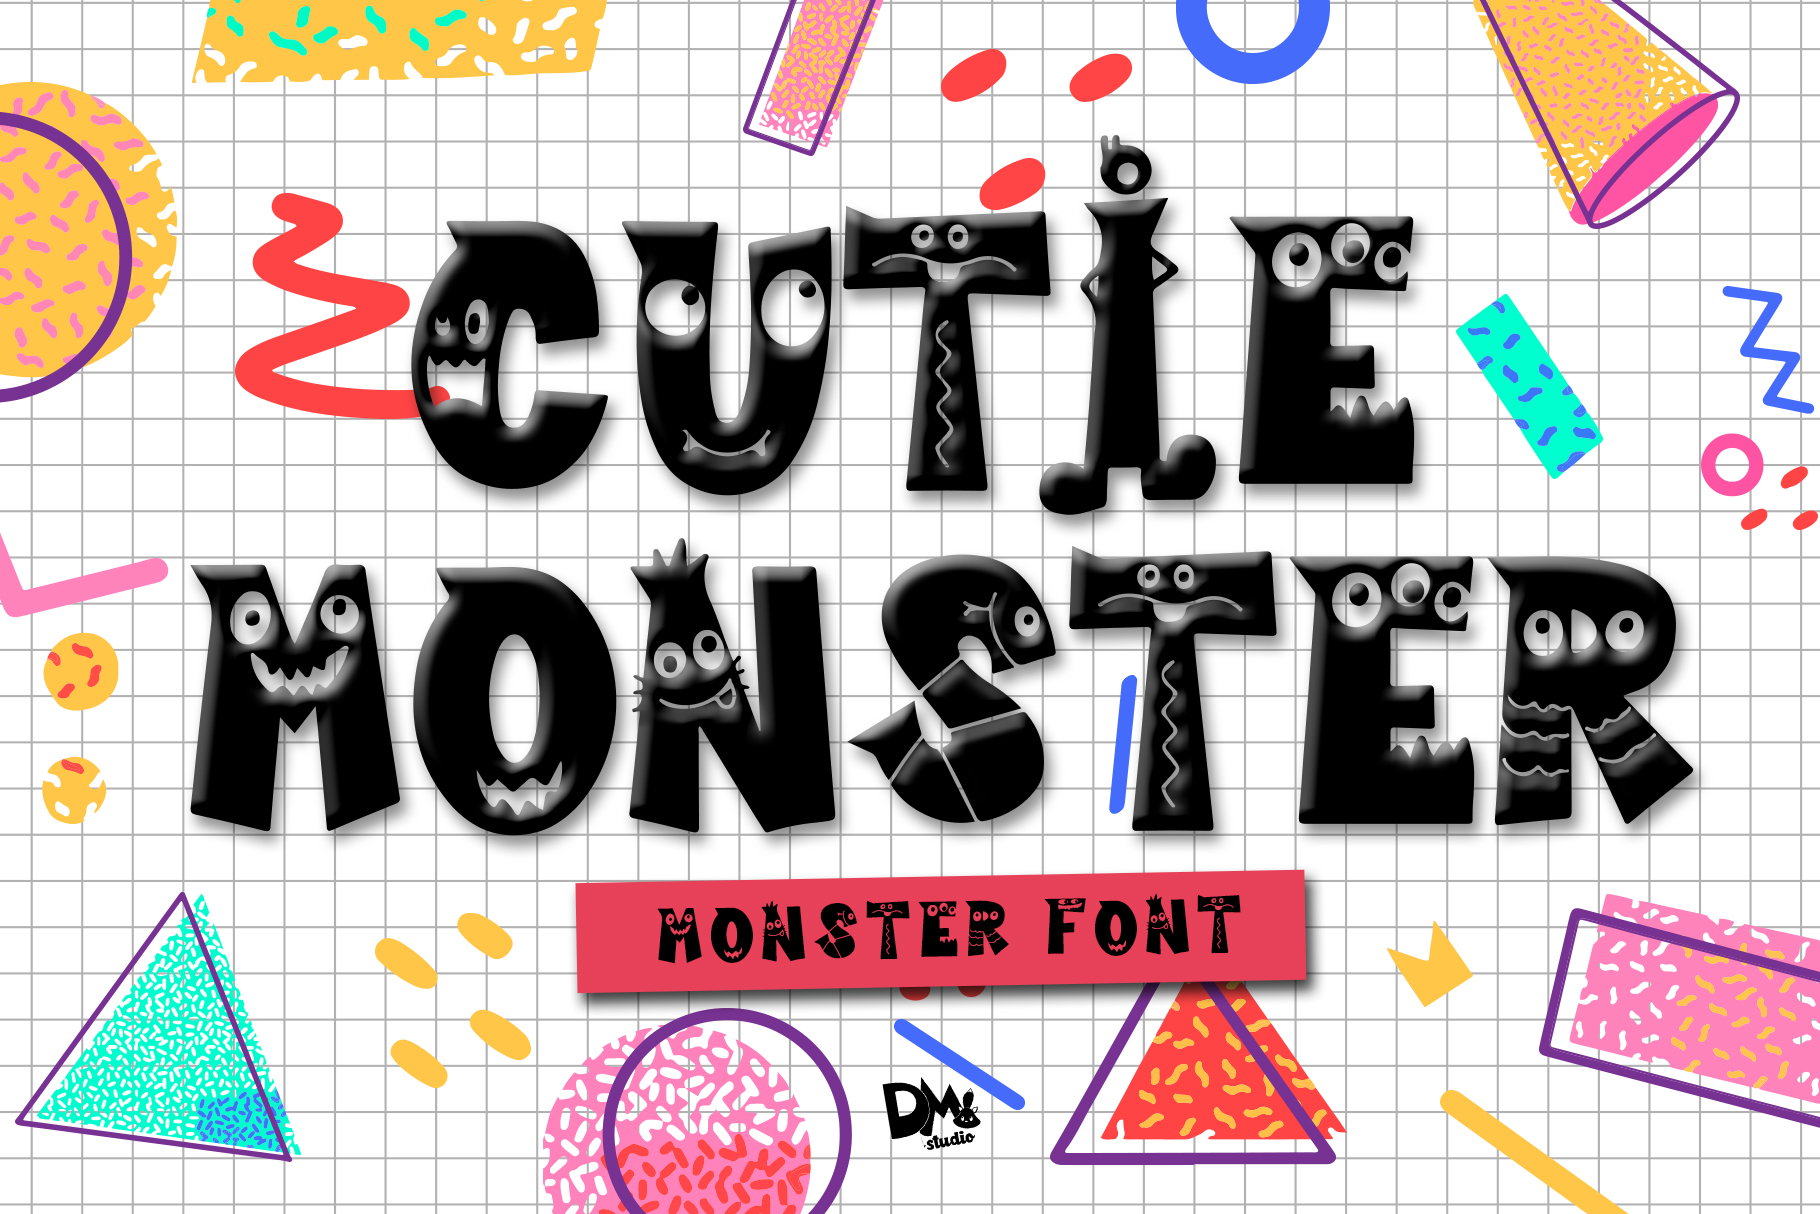 Download Free Cutie Monster Font By Dmletter31 Creative Fabrica for Cricut Explore, Silhouette and other cutting machines.